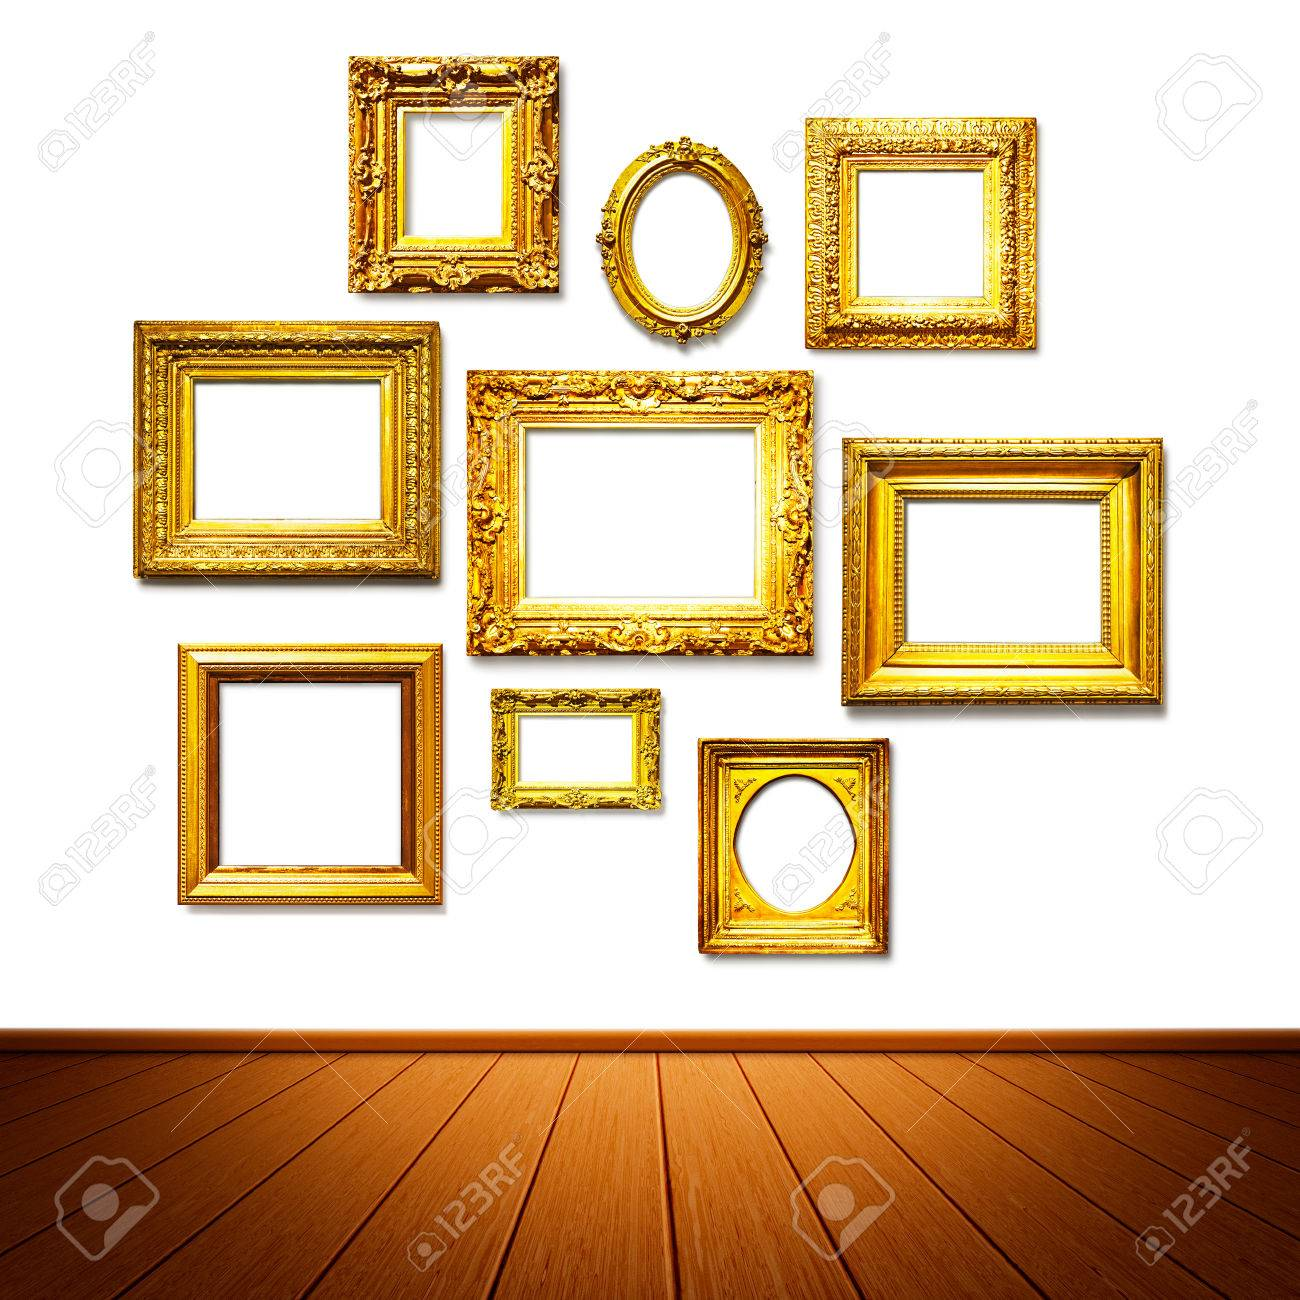 Wall Art Frames antique golden frames on the wall. art gallery. objects group